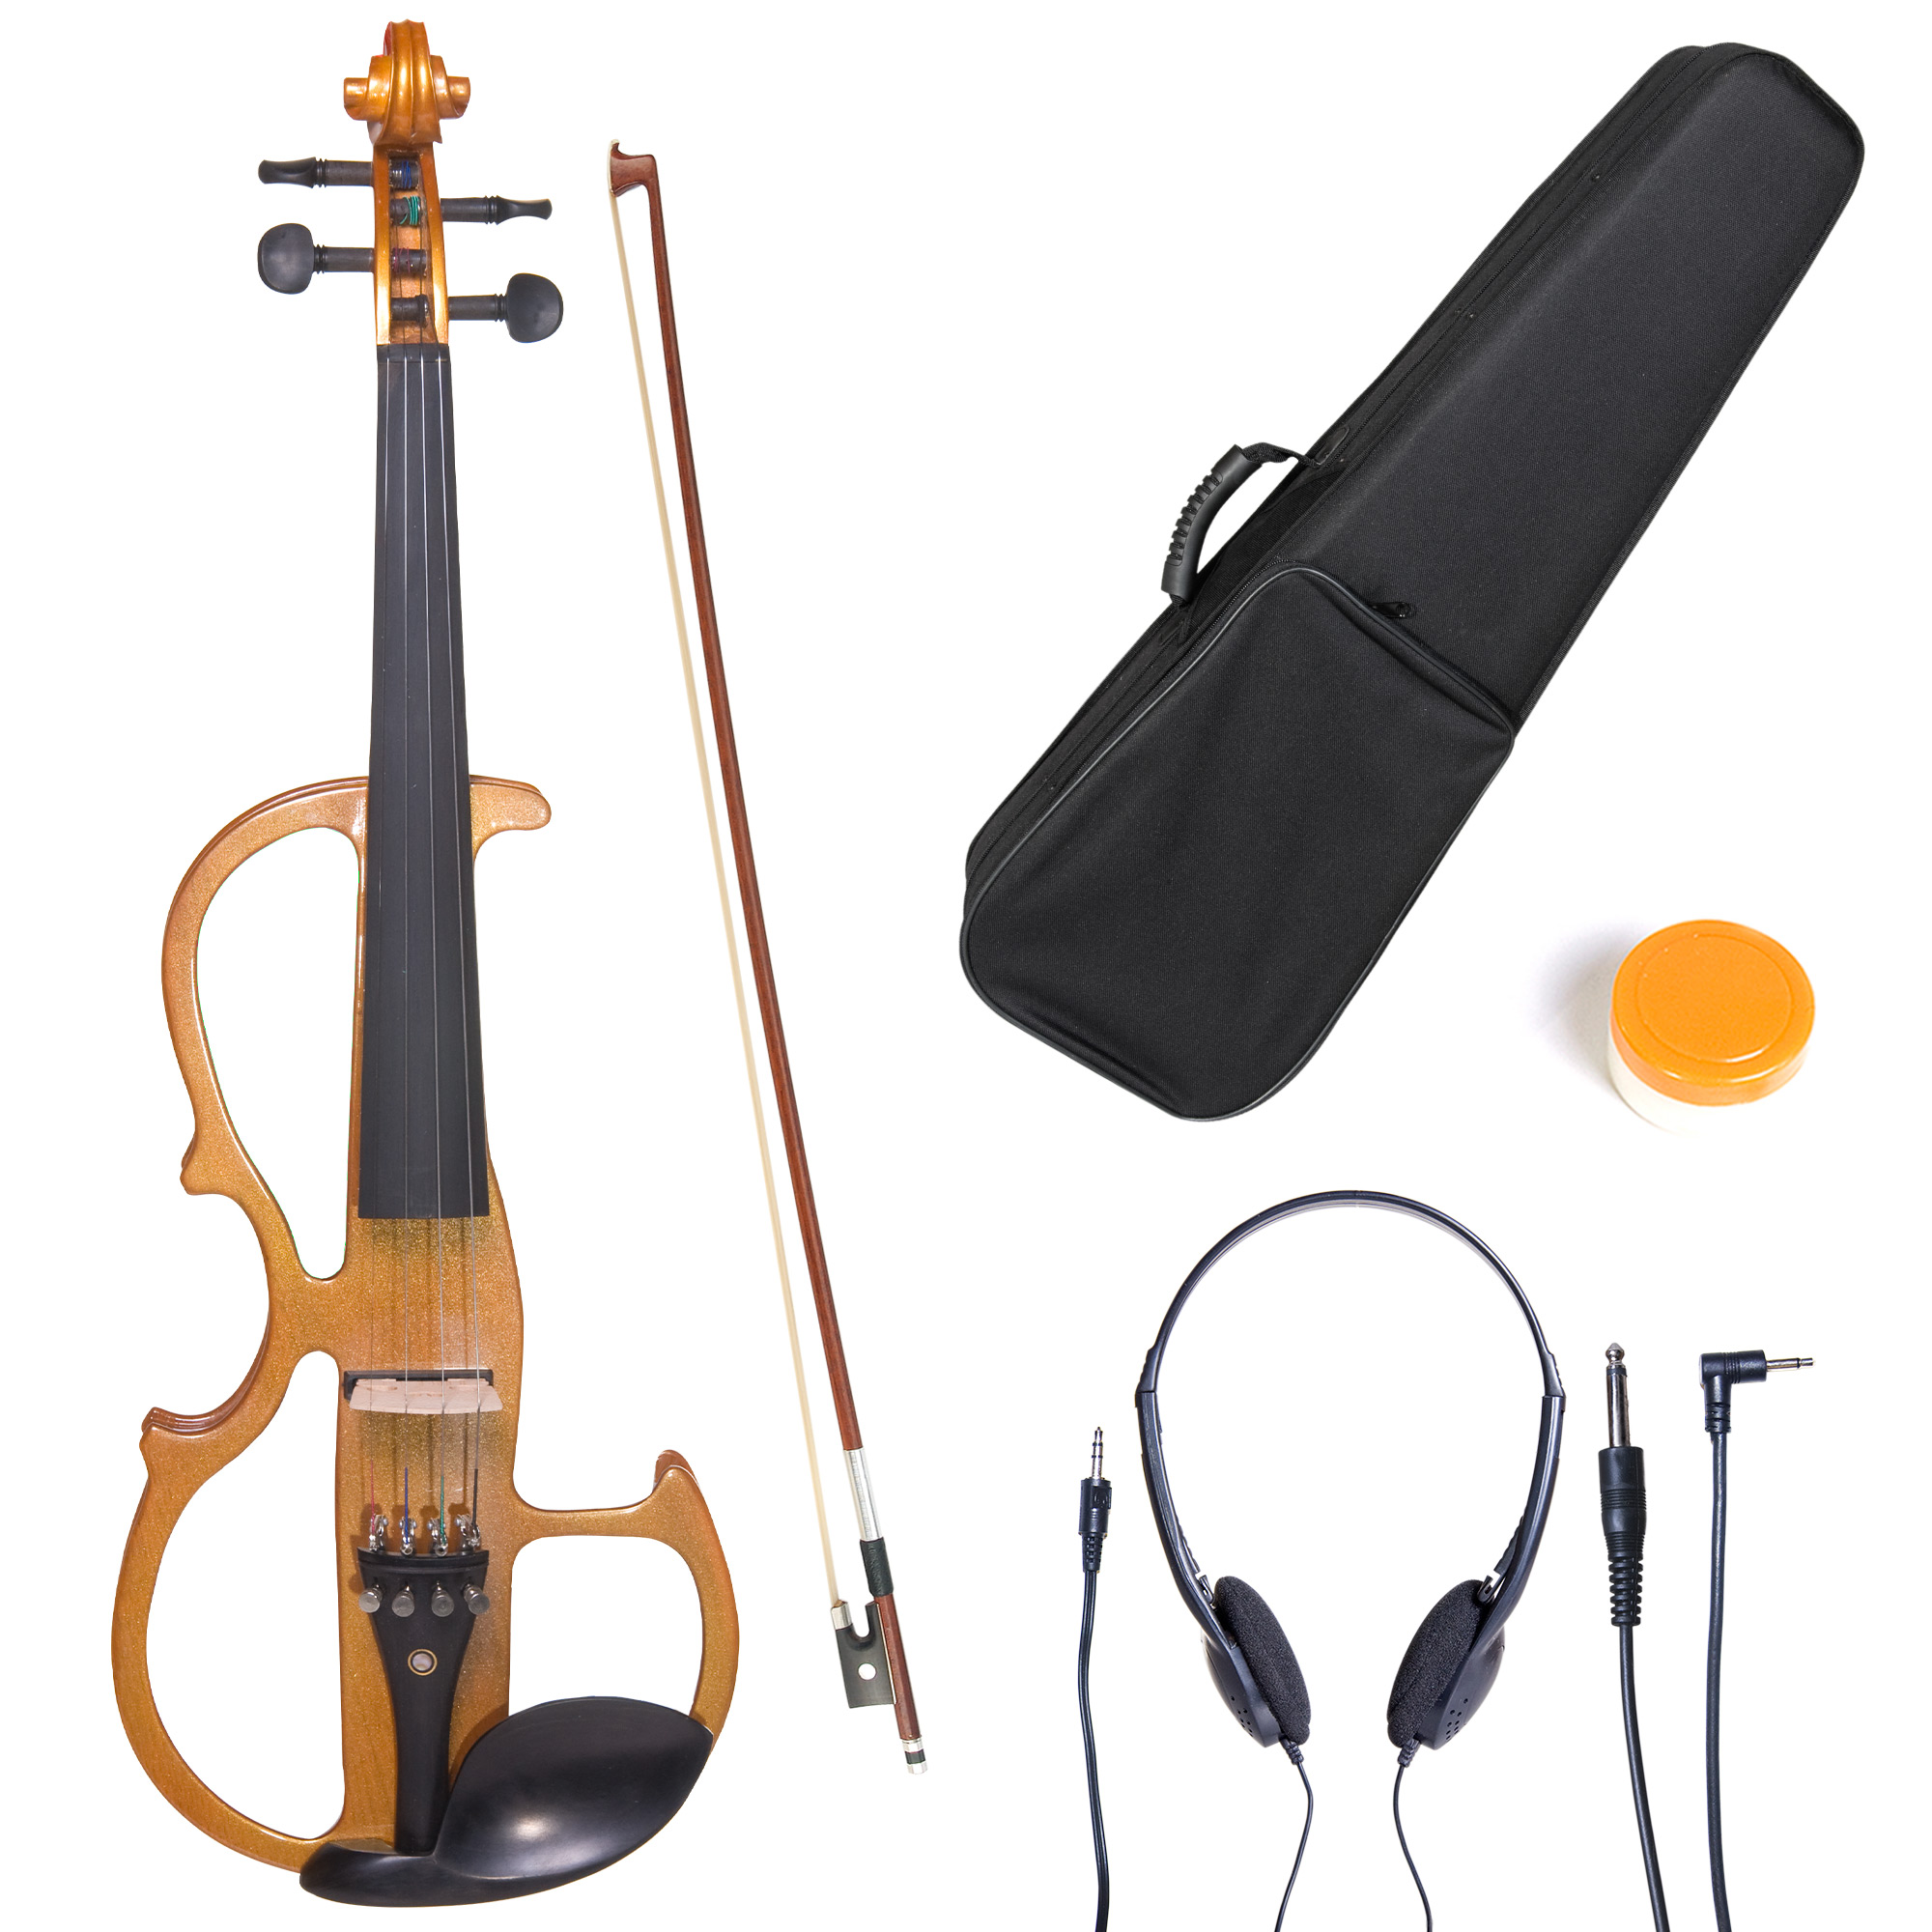 Cecilio Full Size Left-Handed Solid Wood Electric Silent Violin with Ebony Fittings-L4/4CEVN-L2Y Metallic Yellow Maple